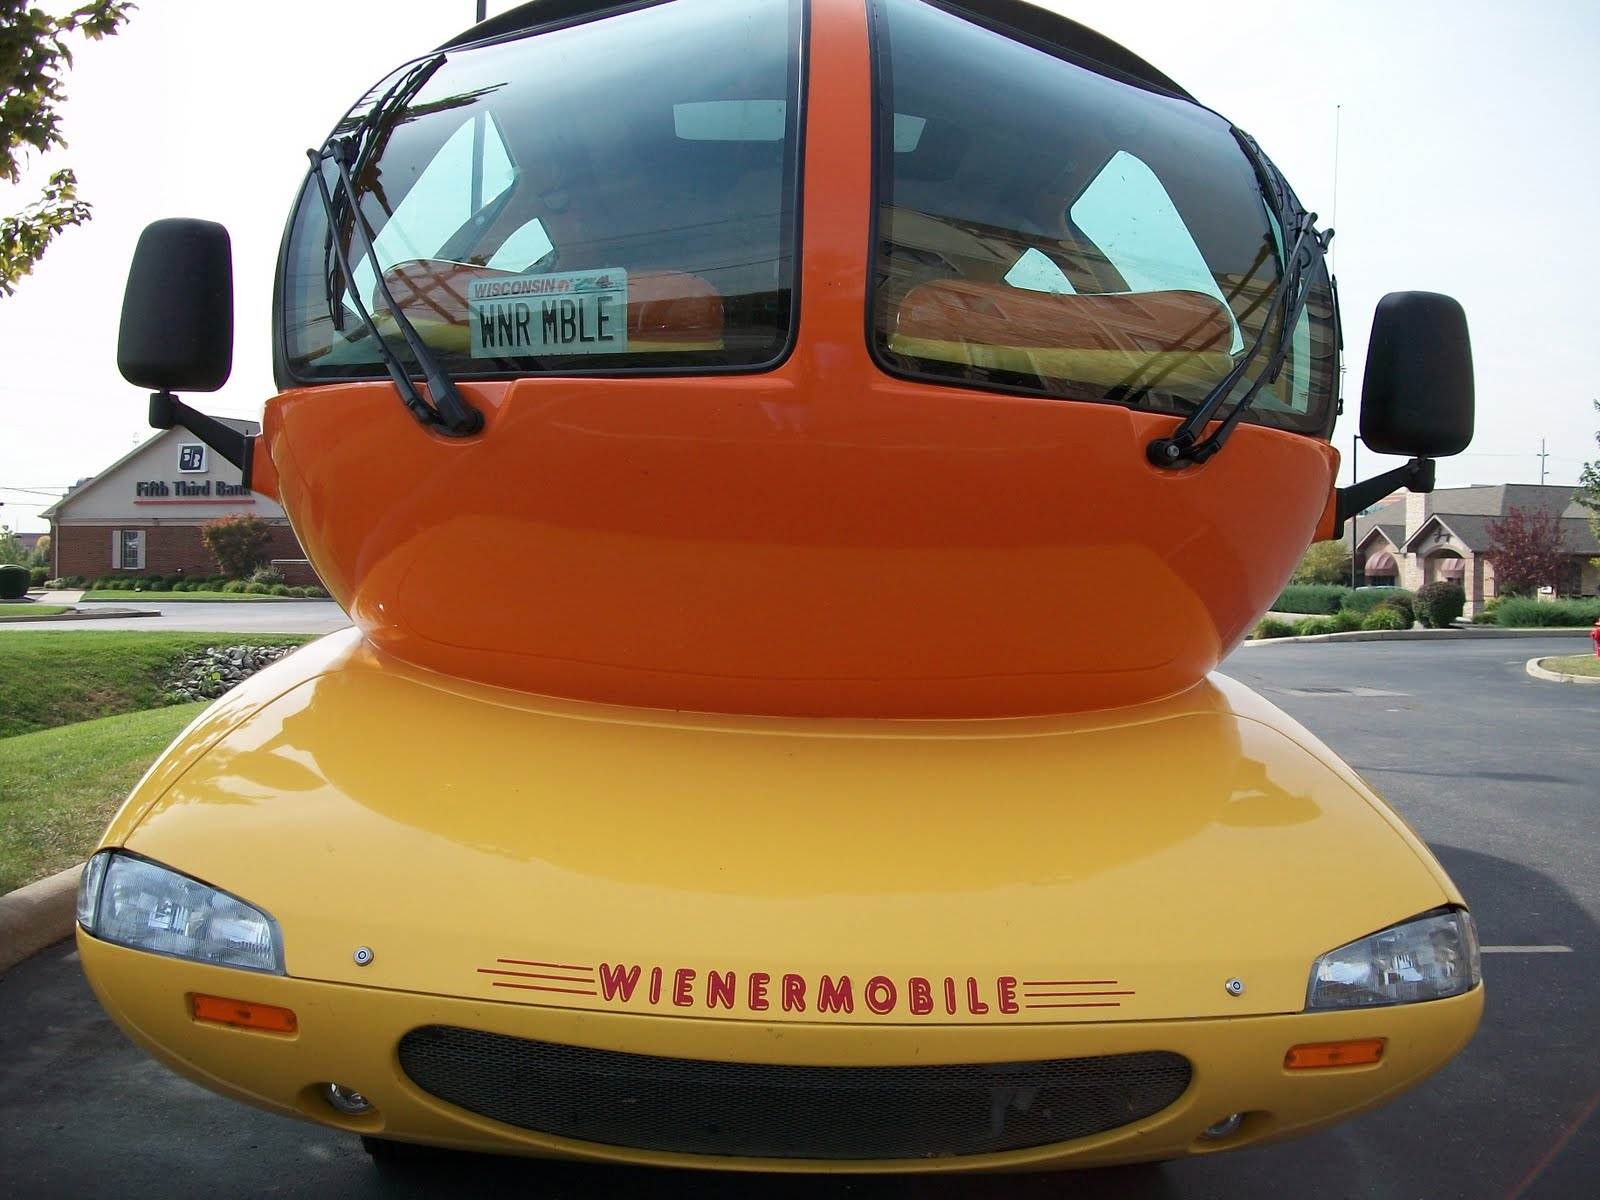 55030368 Story together with Oscar mayer wienermobile in addition 2010 10 01 archive besides Gaslight further From Hot Dogs In The South To Chili Dogs In The Midwest. on oscar mayer wienermobile inside story